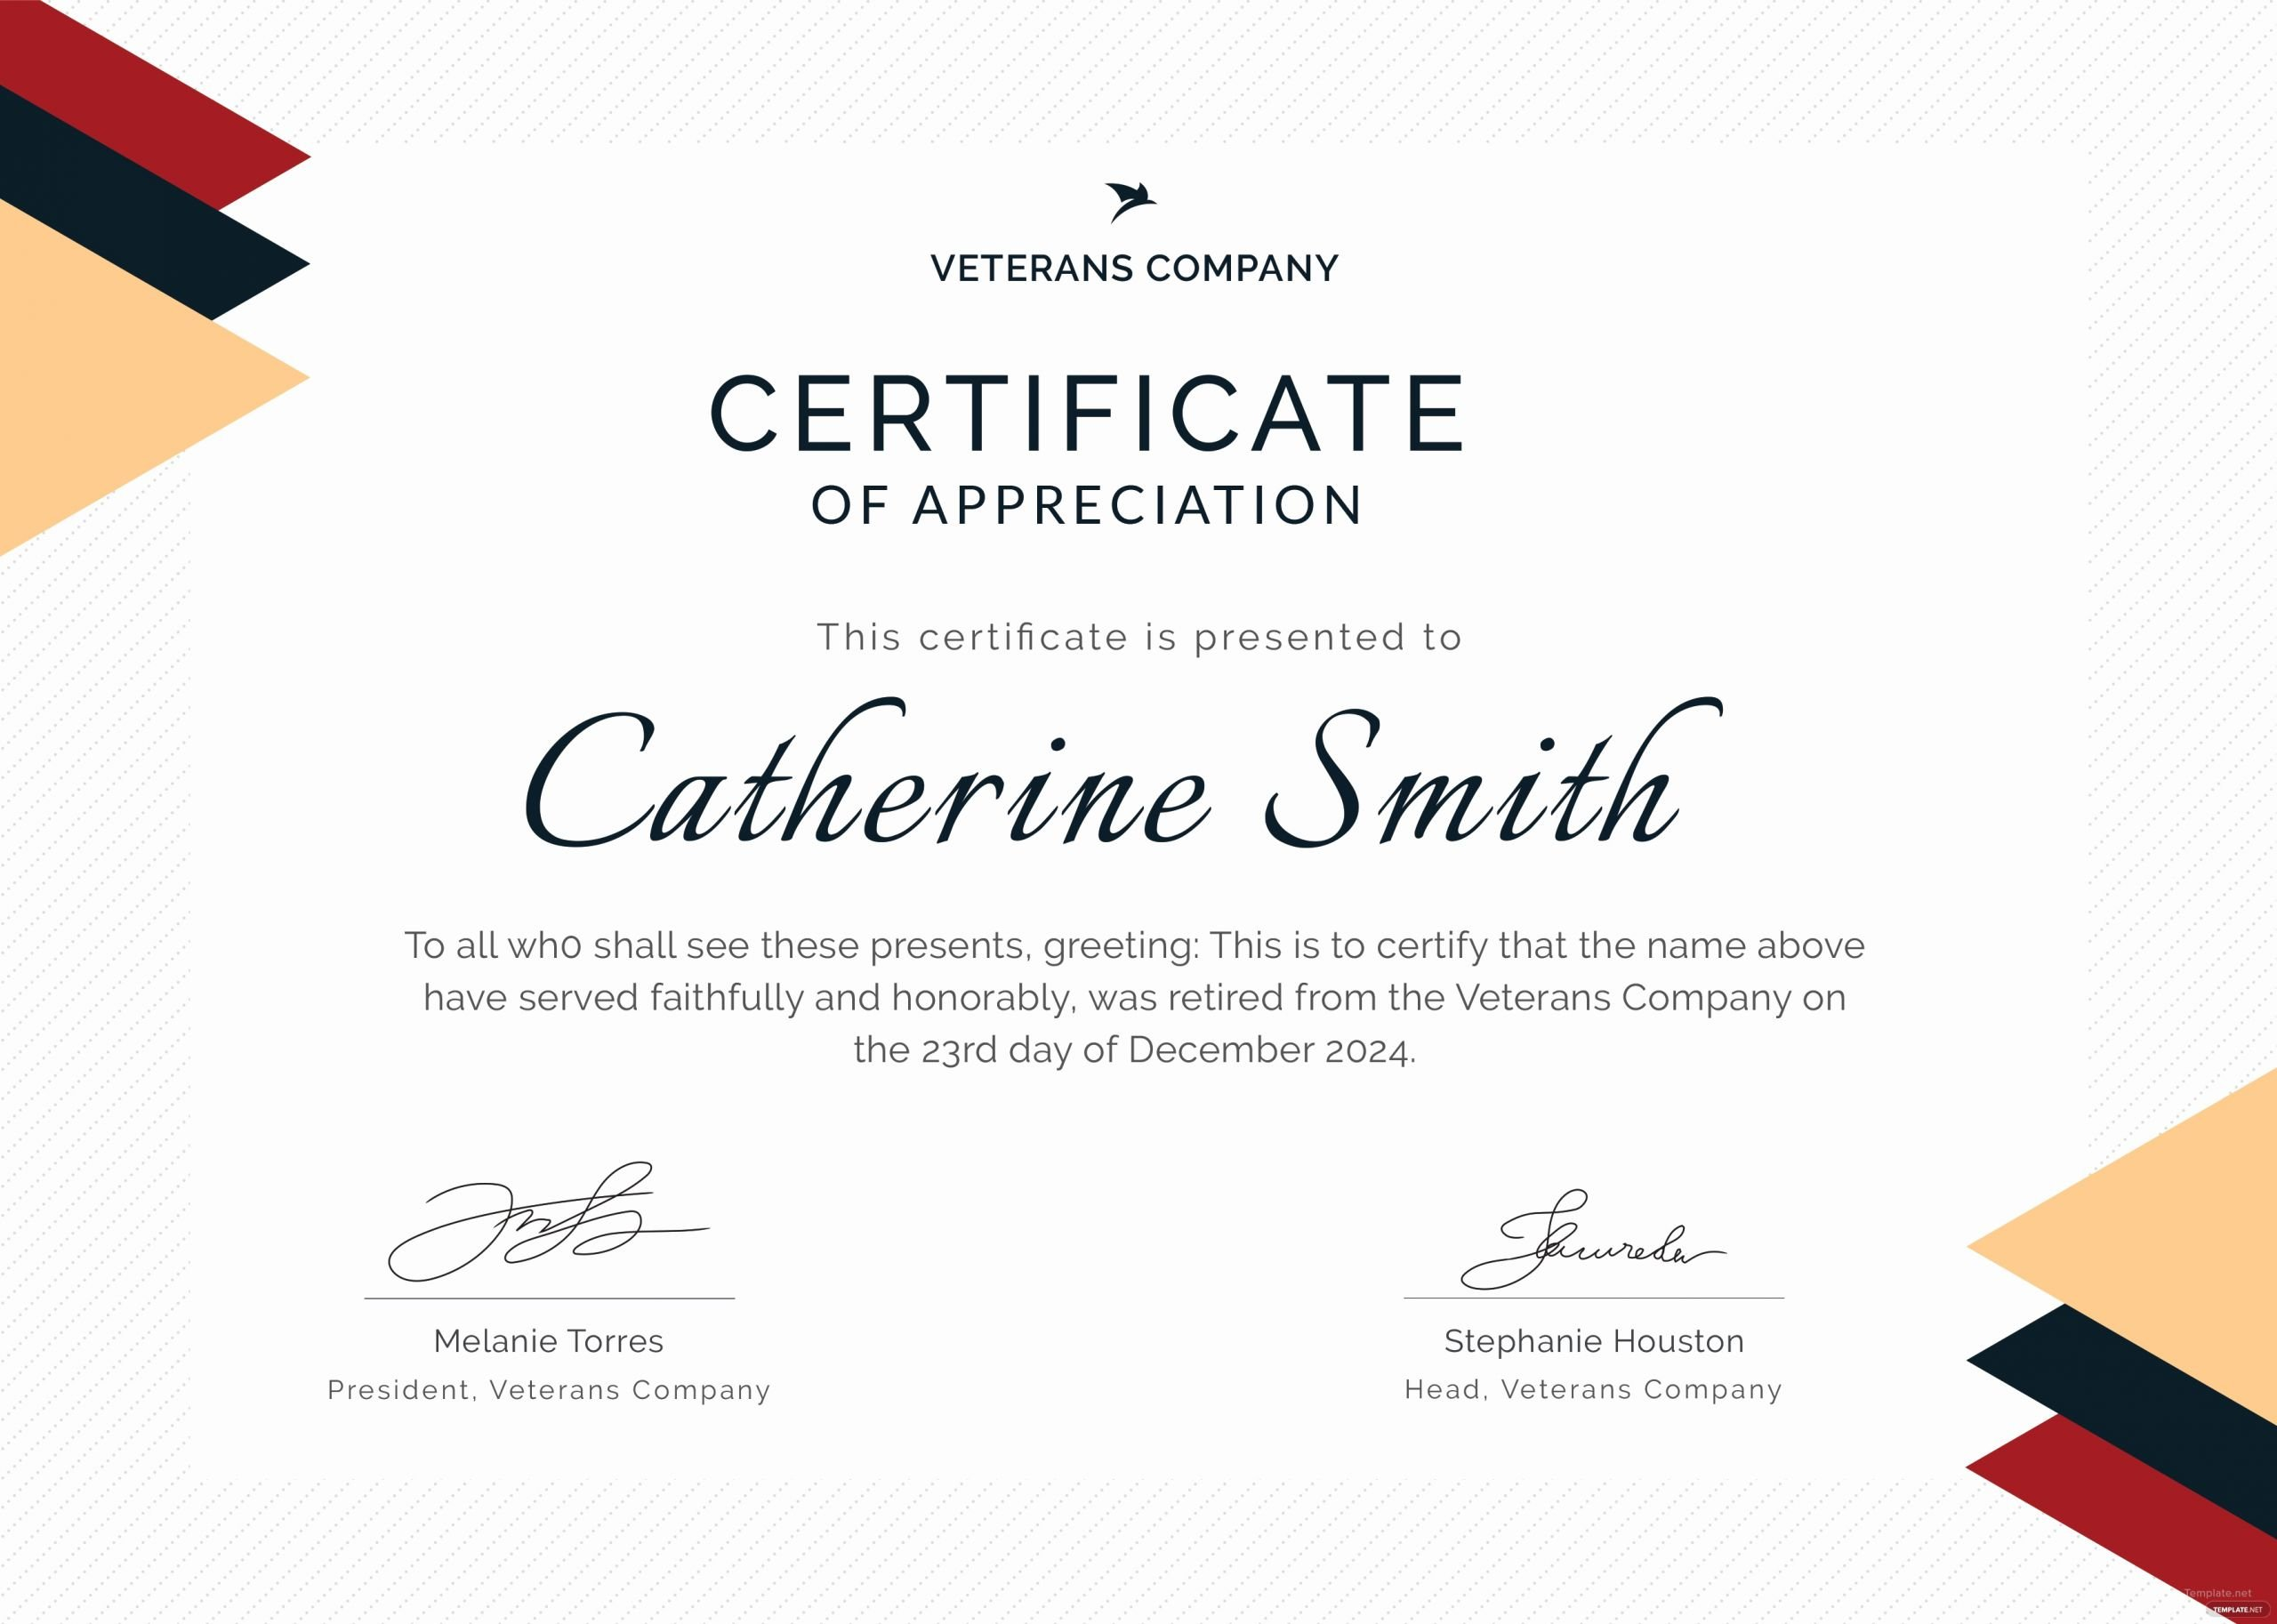 Retirement Certificate Templates for Word Elegant Free Retirement Certificate Of Appreciation Template In